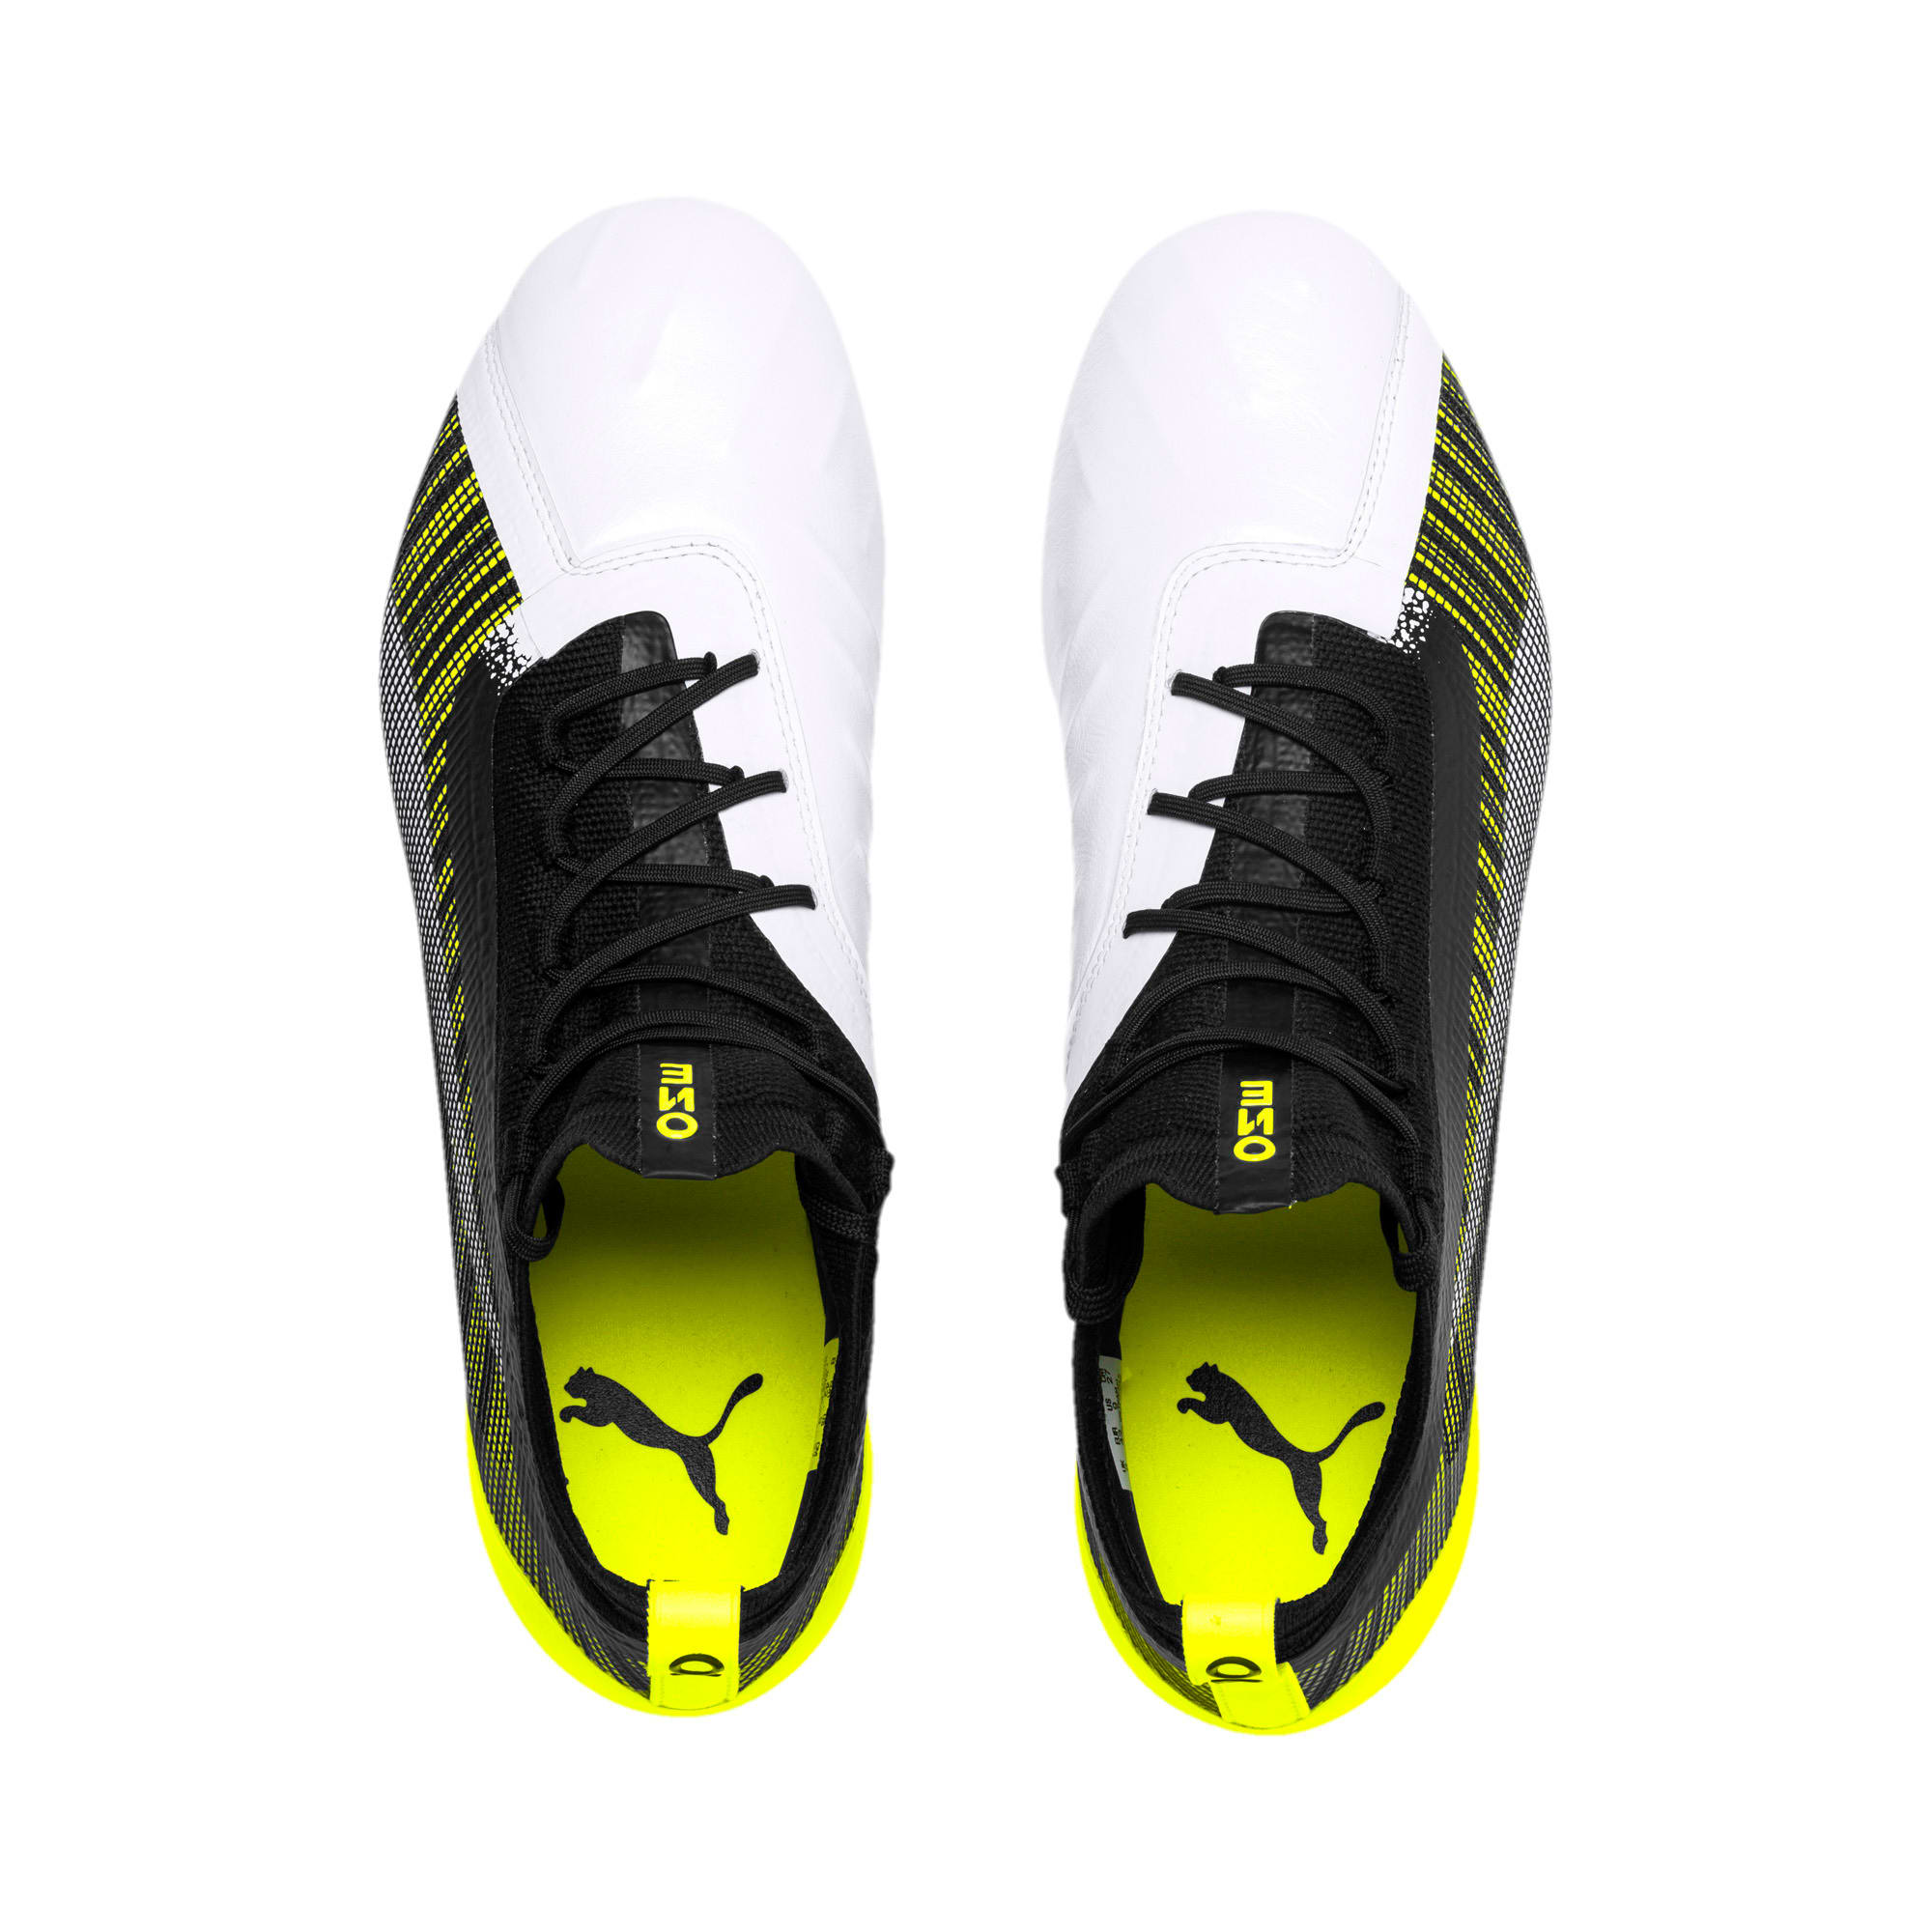 Thumbnail 7 of PUMA ONE 5.1 evoKNIT FG/AG Men's Football Boots, White-Black-Yellow Alert, medium